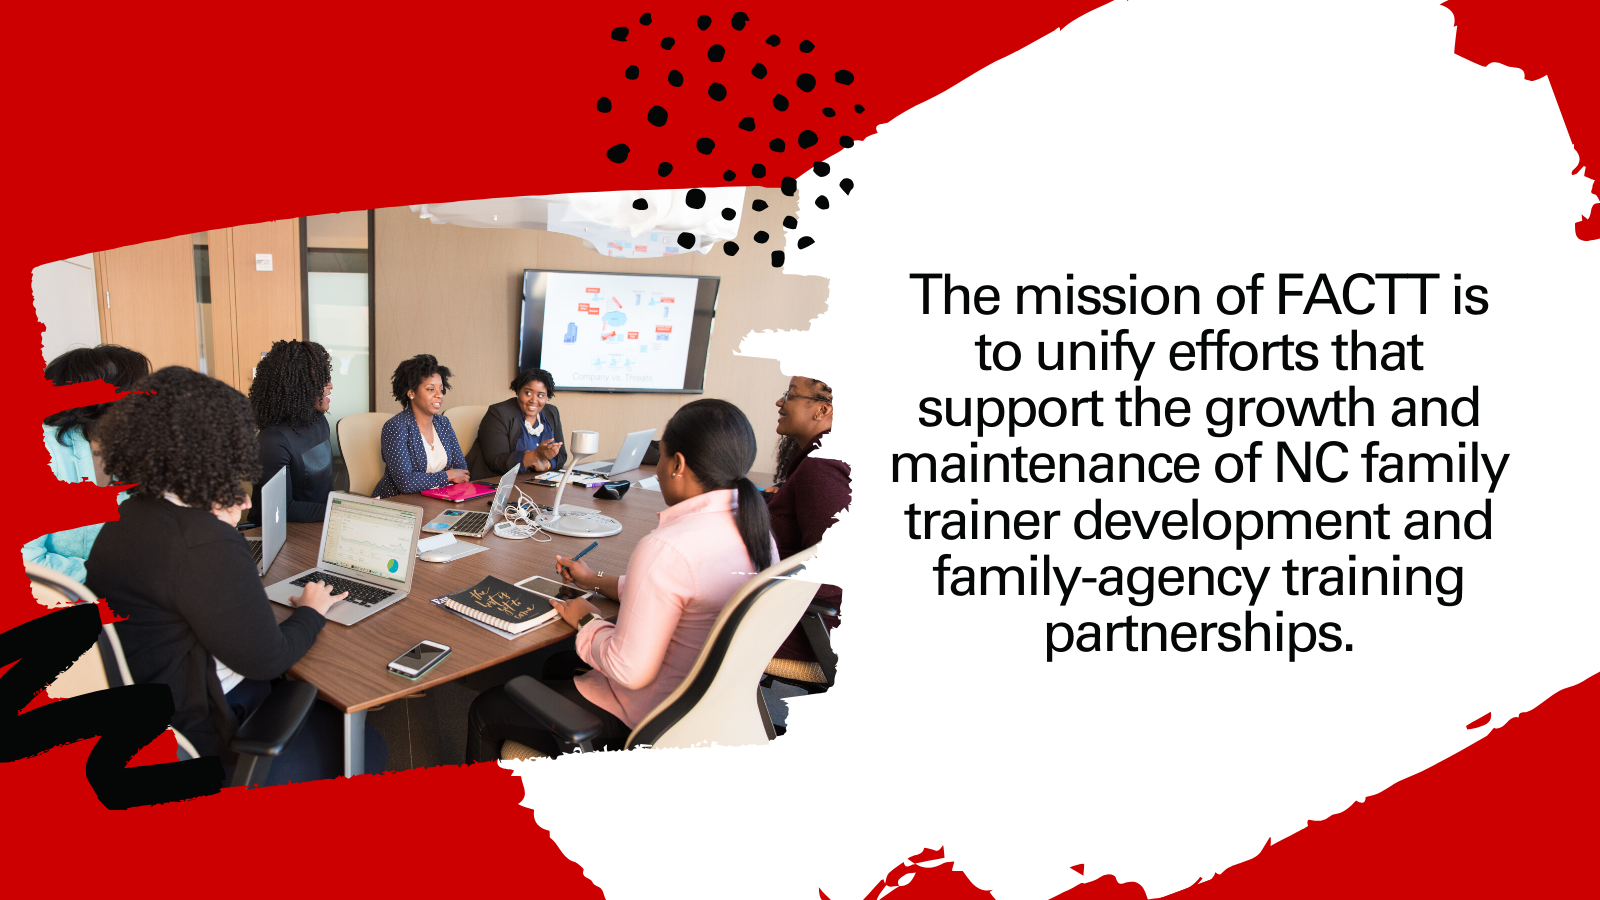 The mission of FACTT is to unify efforts that support the growth and maintenance of NC family trainer development and family-agency training partnerships.